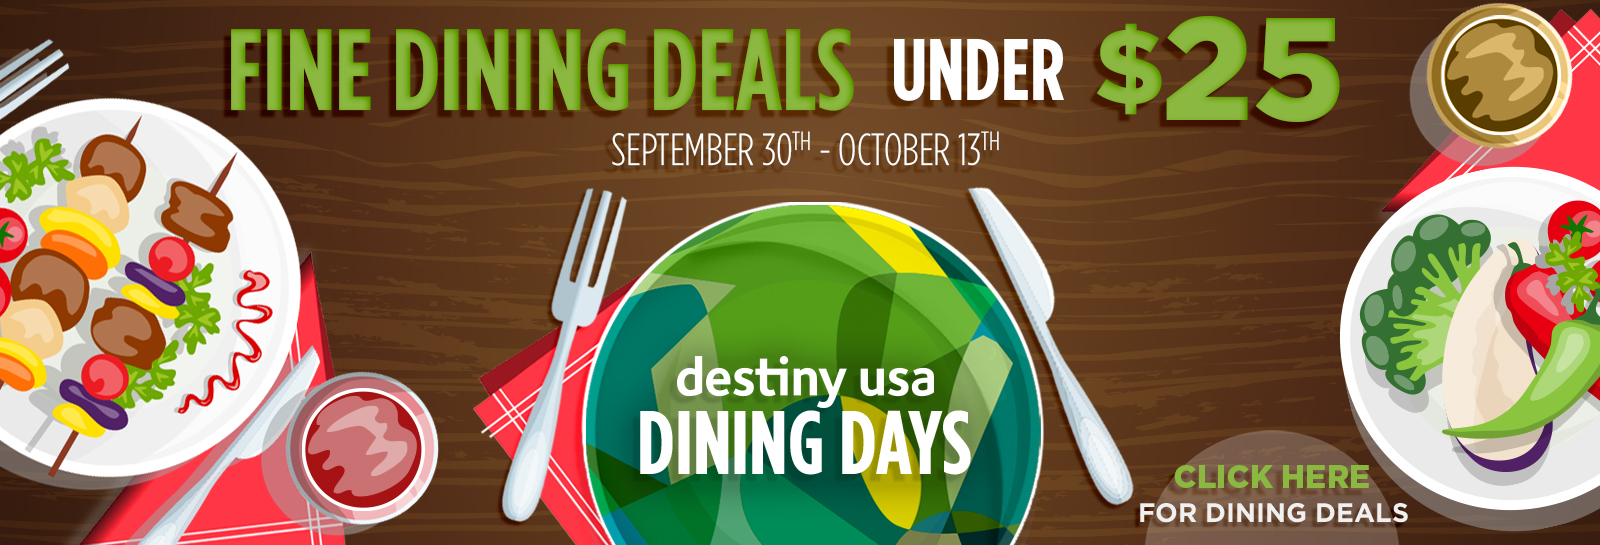 2019 09 19 dusa dining days slider